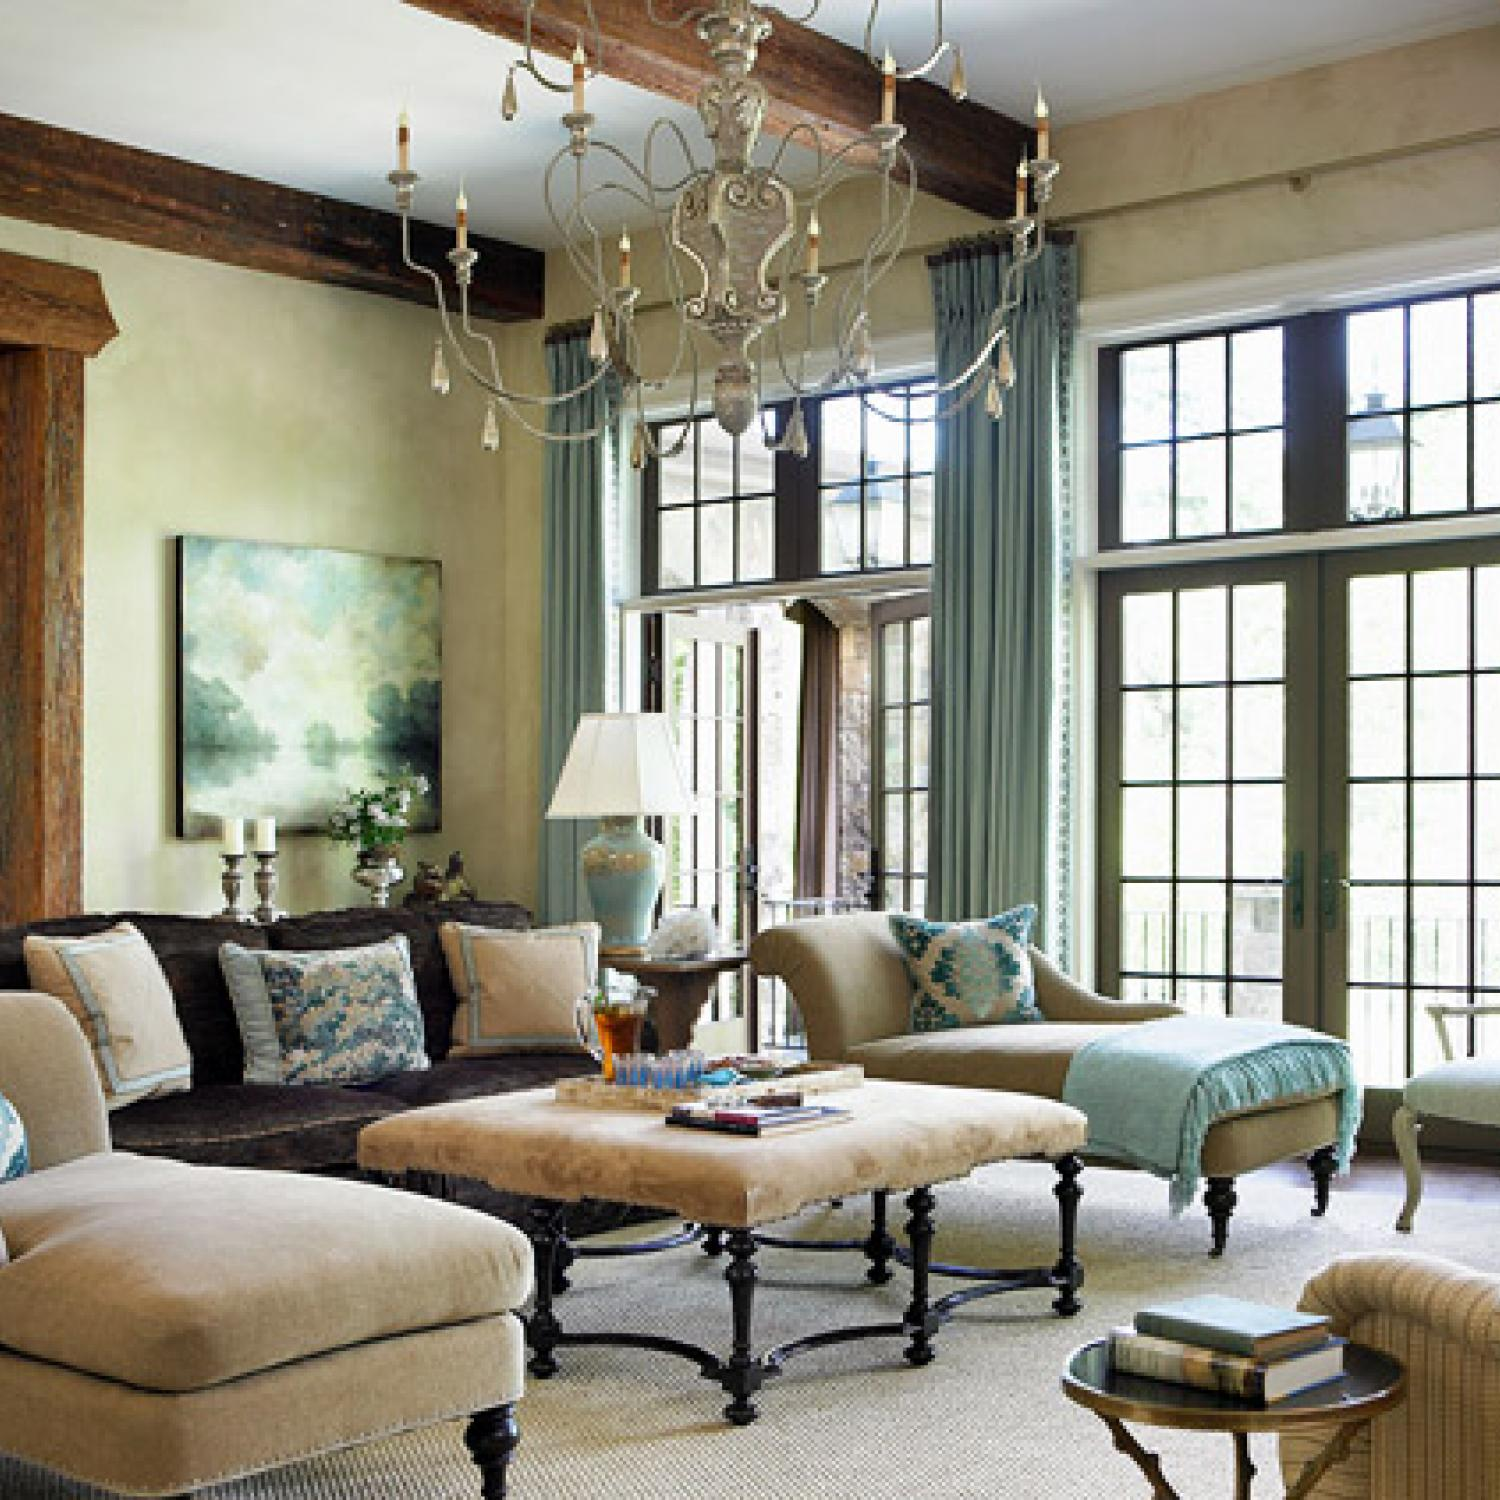 Traditional Interior Design By Ownby: Elegant And Family-Friendly Atlanta Home